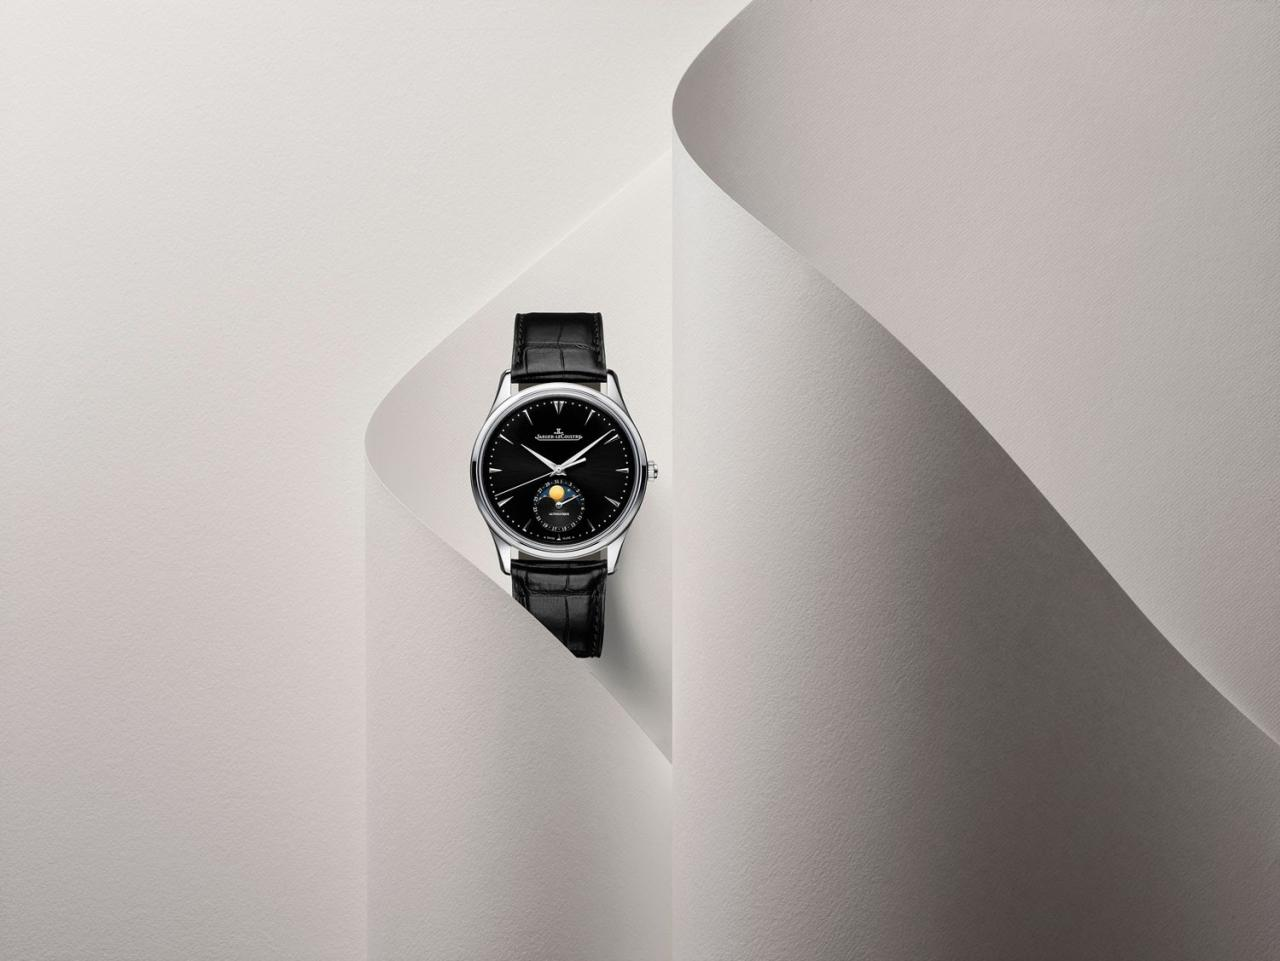 Jaeger-LeCoultre Master Ultra Thin Moon watch replica